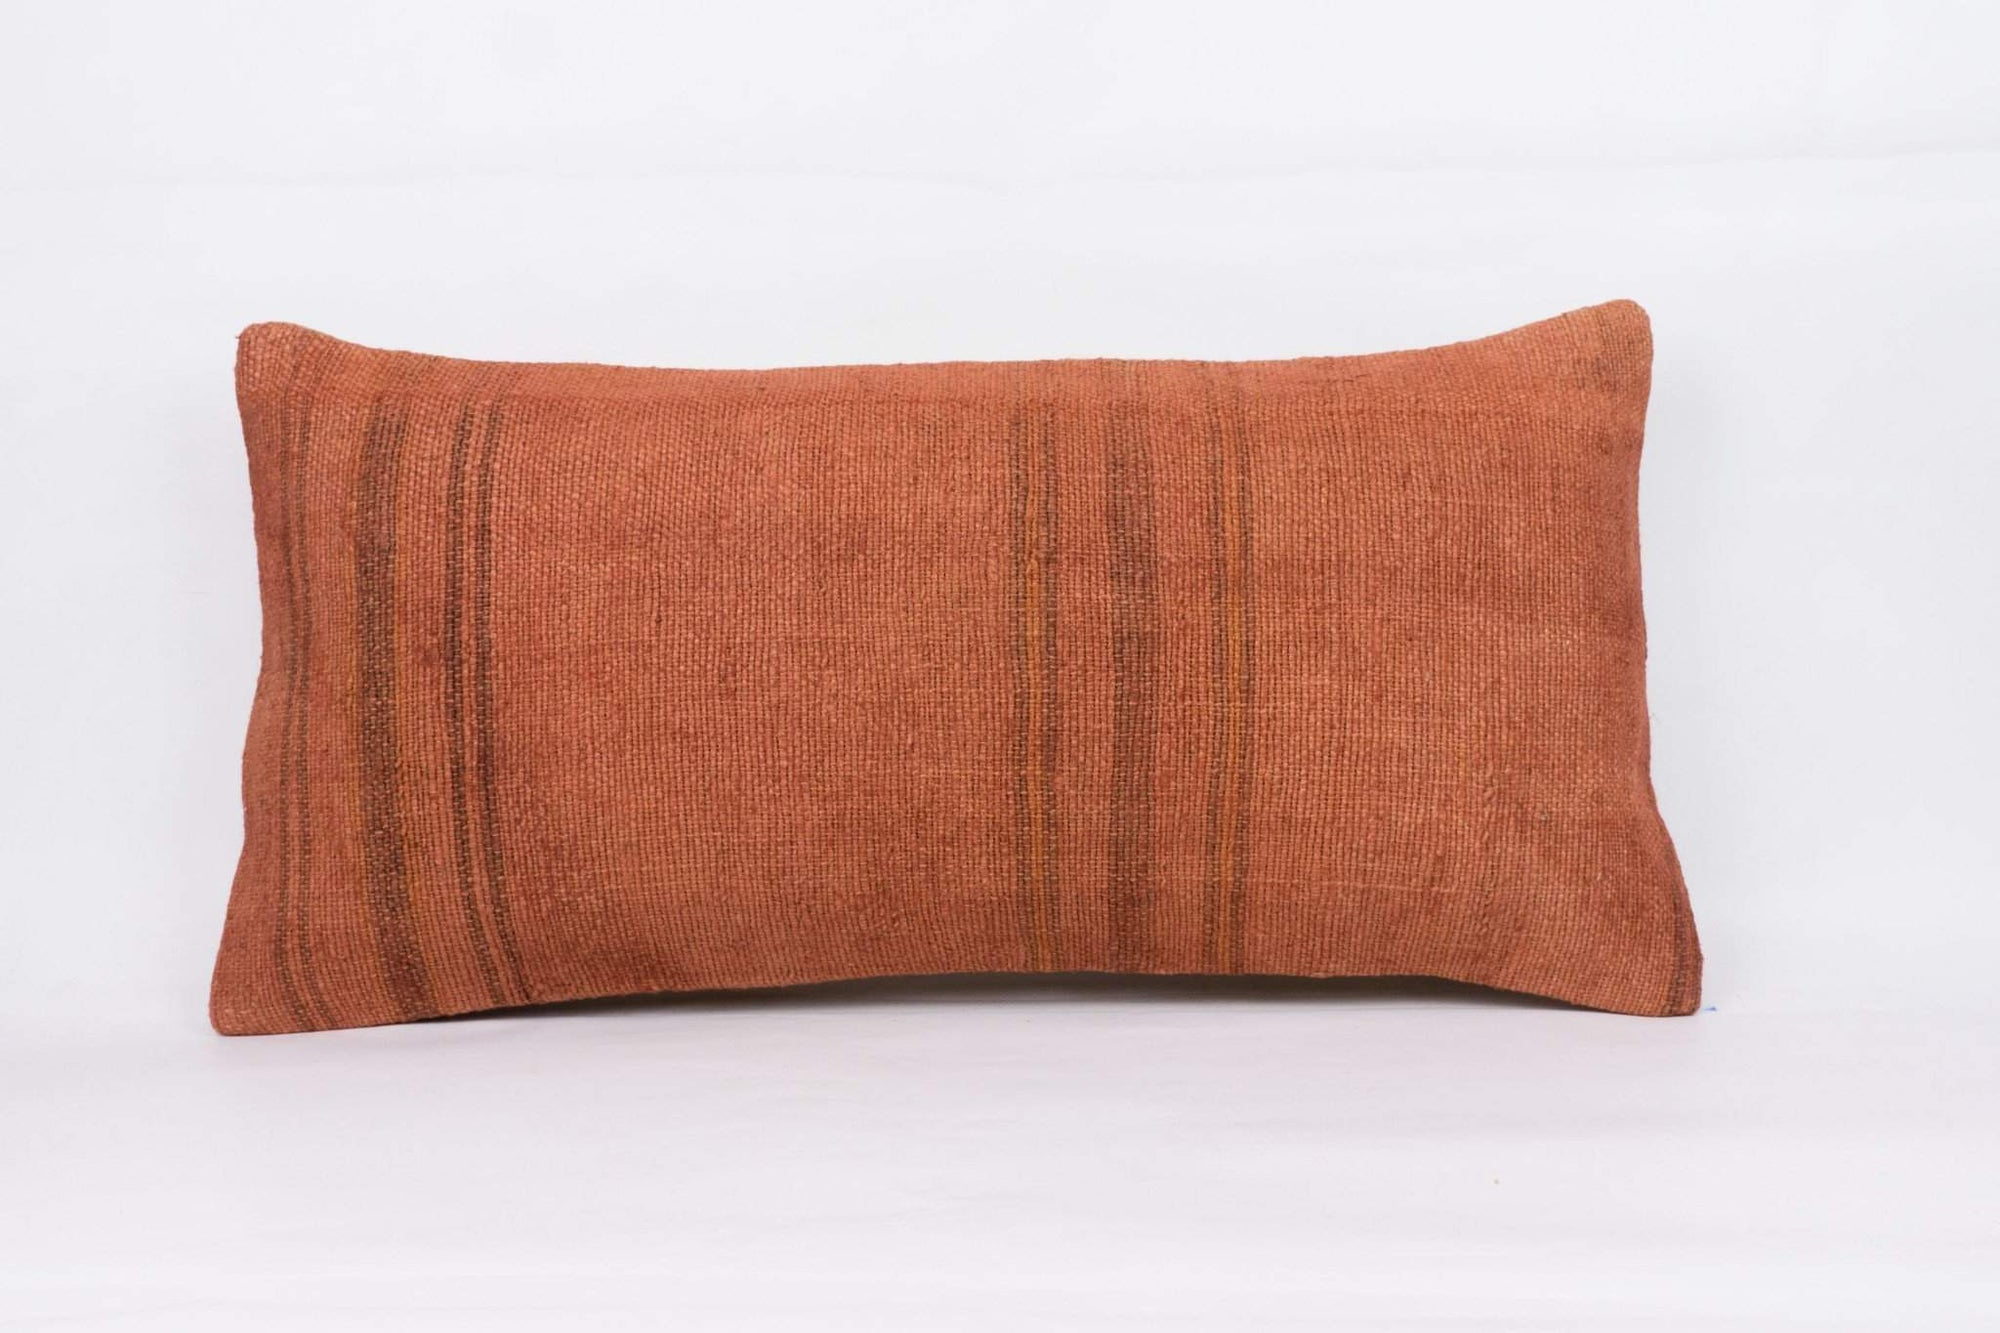 Plain Brown Kilim Pillow Cover 12x24 4166